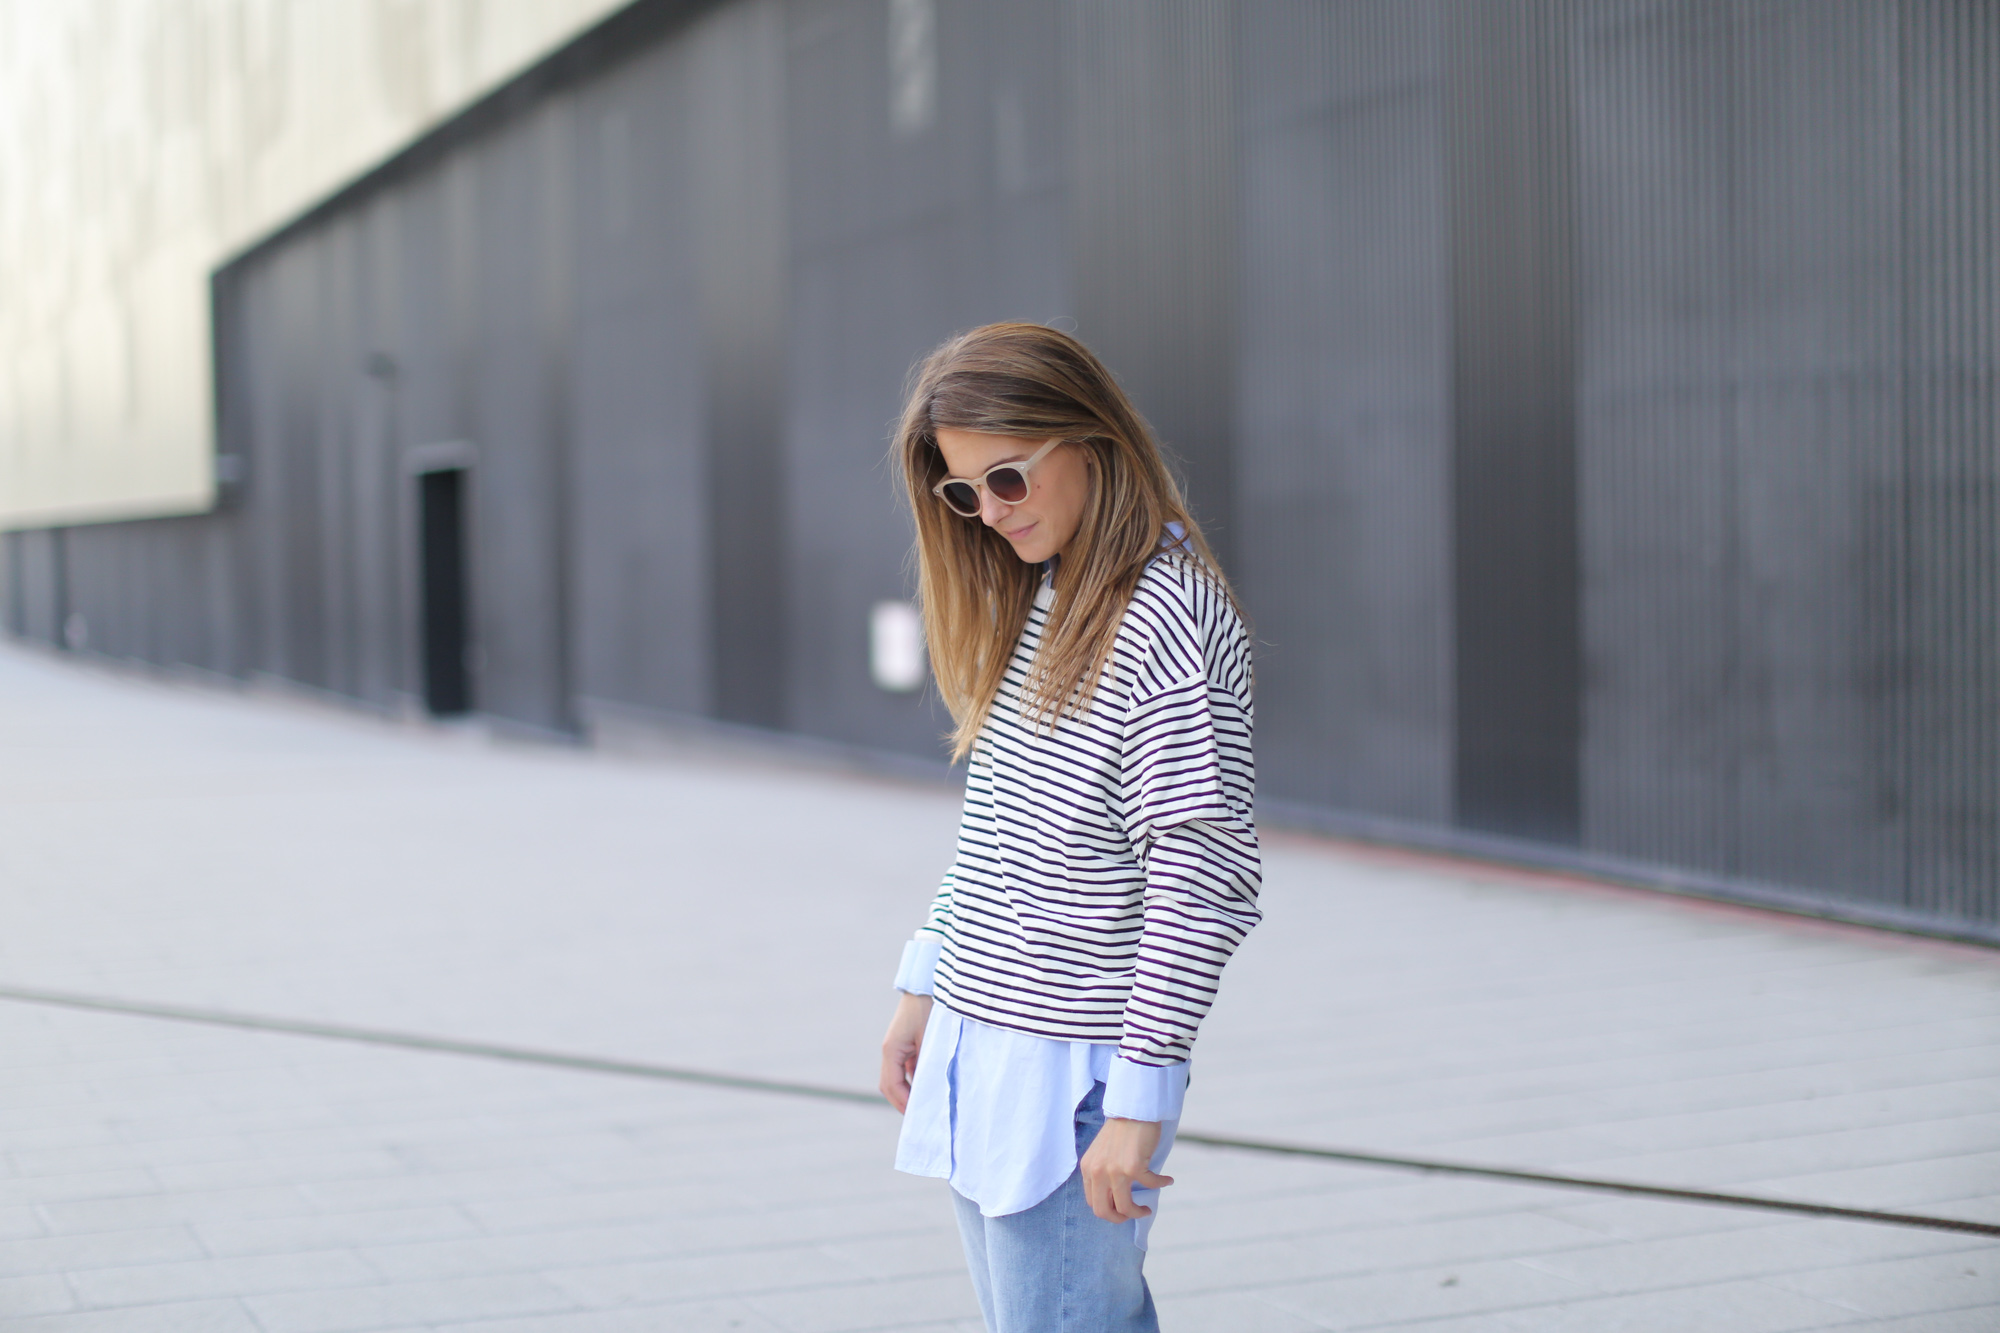 Clochet-streetstyle-suiteblanco-boyfriend-jeans-striped-sweater-adidas-stan-smith-11